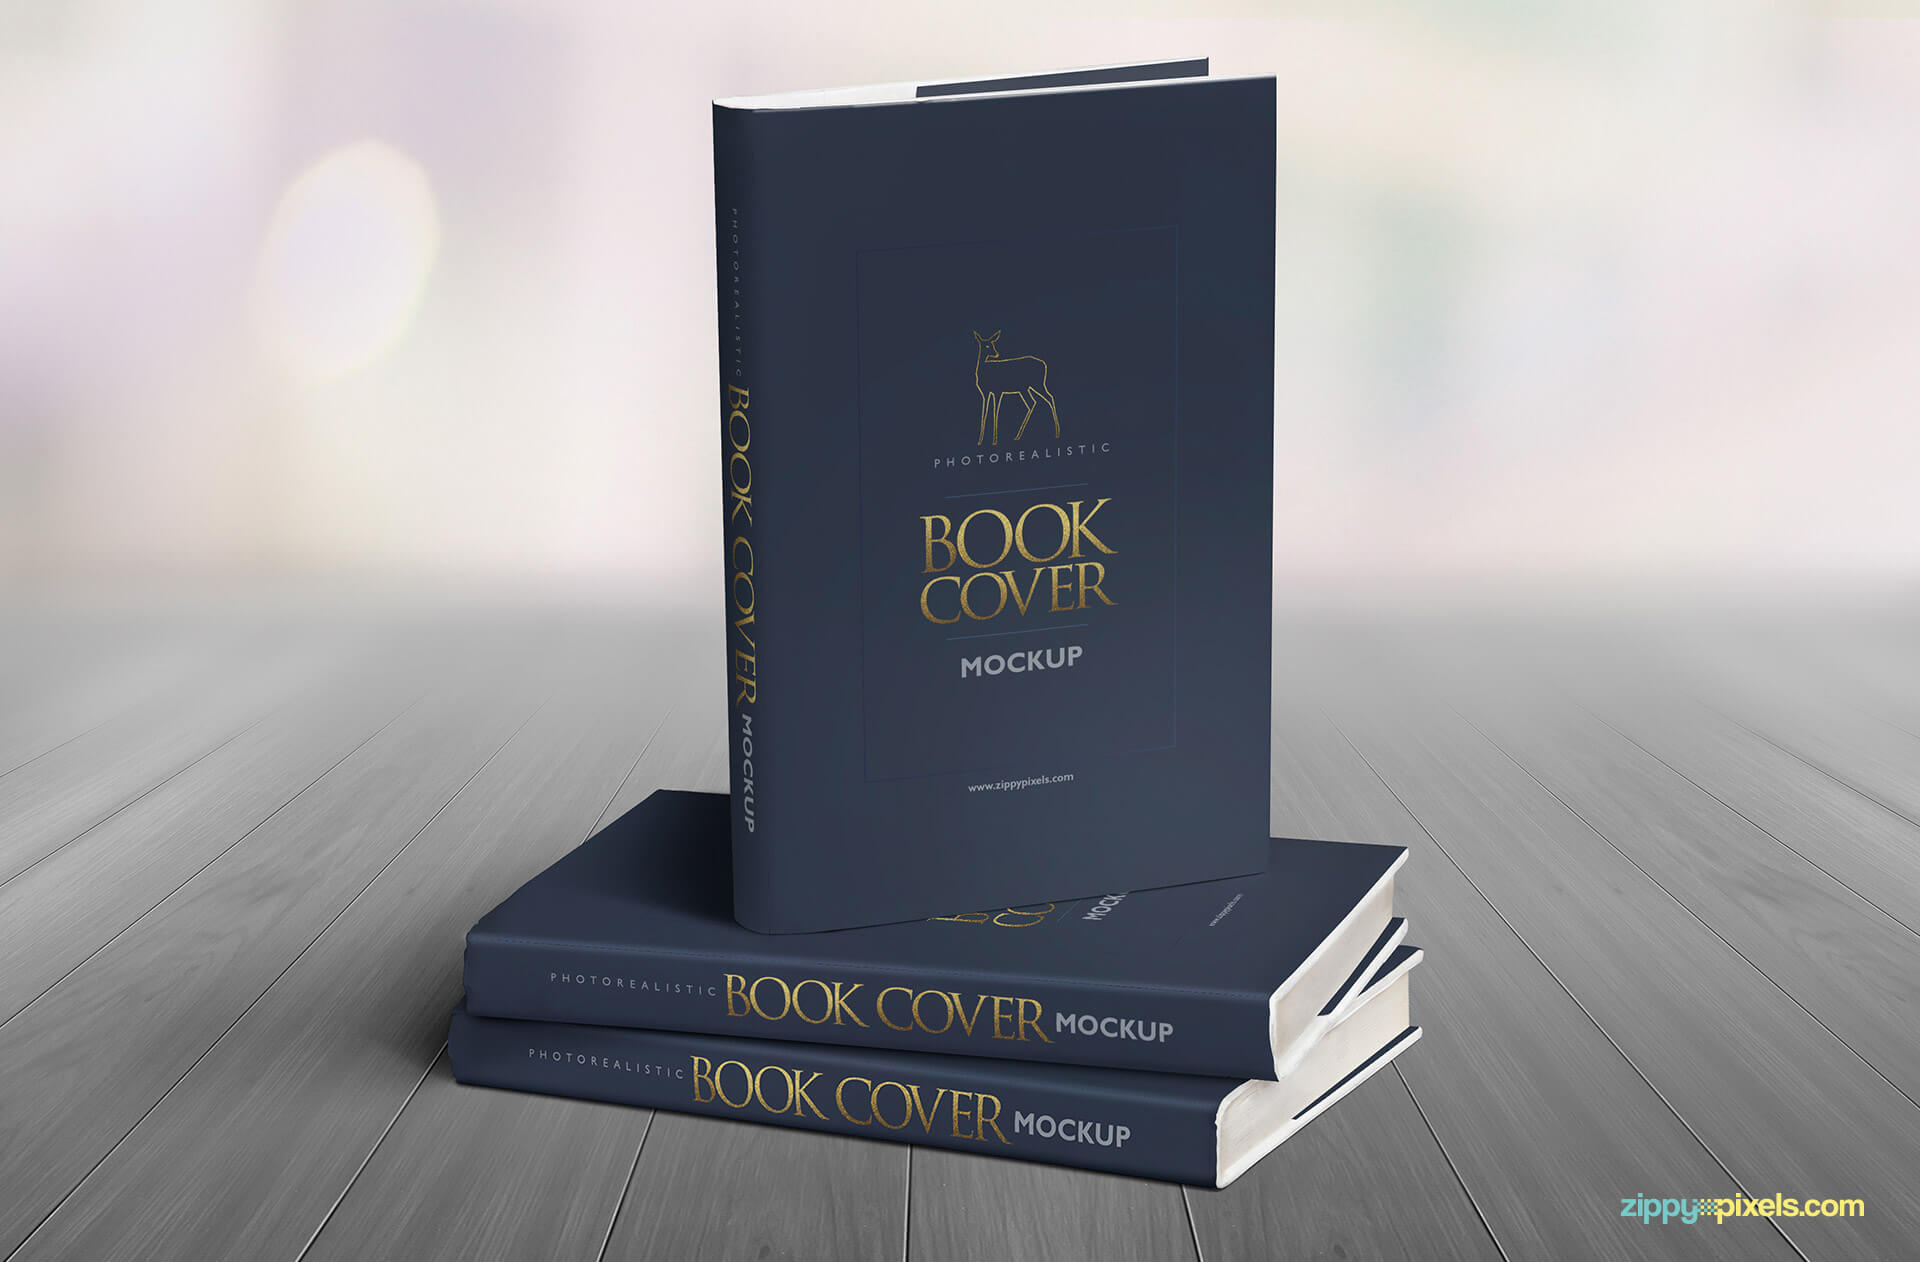 Photorealistic PSD book mockup showcasing cover designs on book standing on two other books